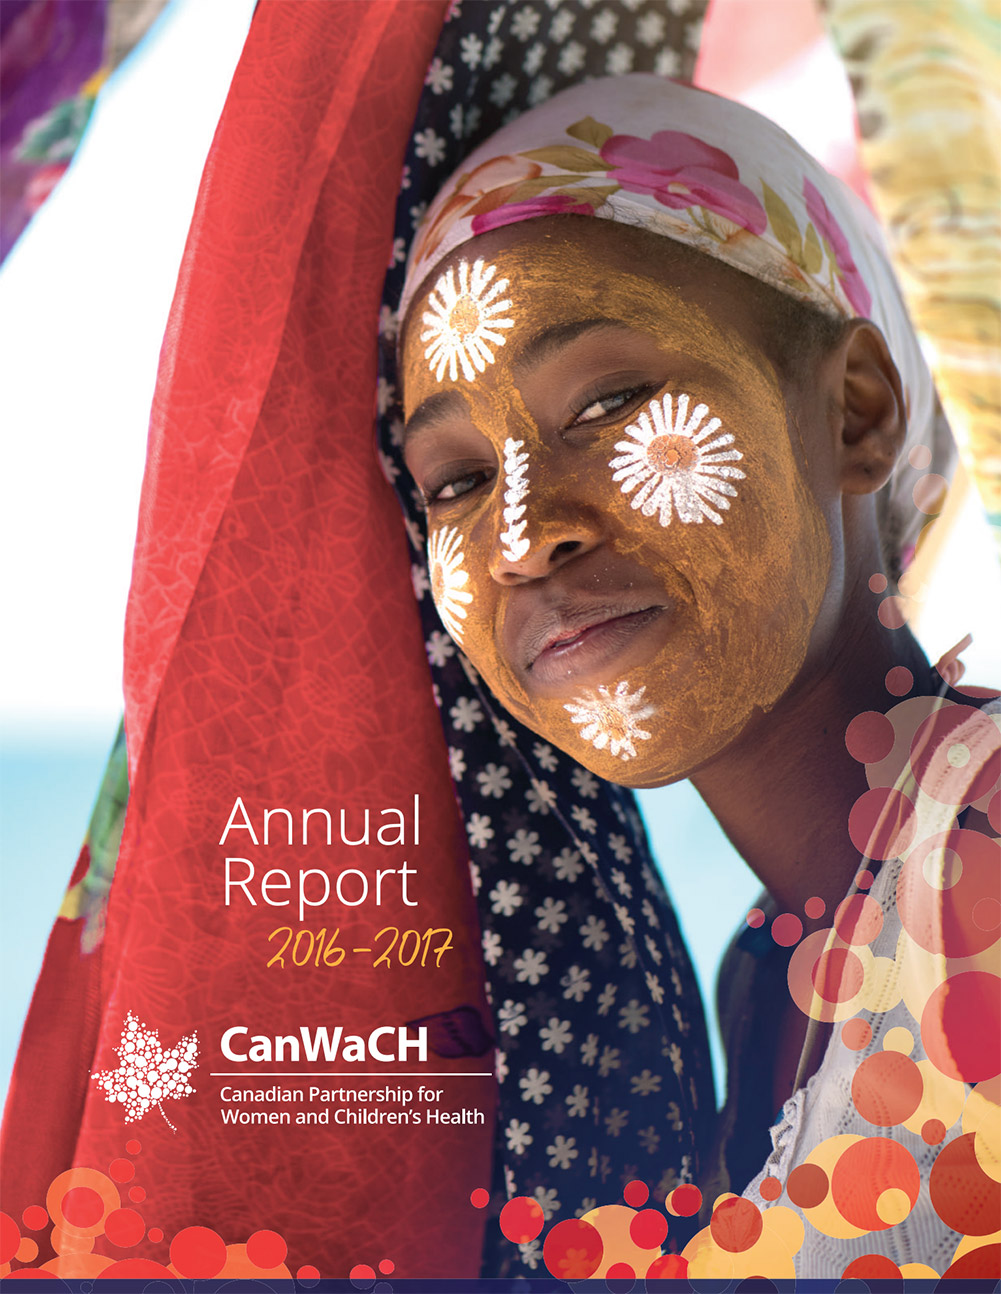 CanWaCH Annual Report 2016-2017